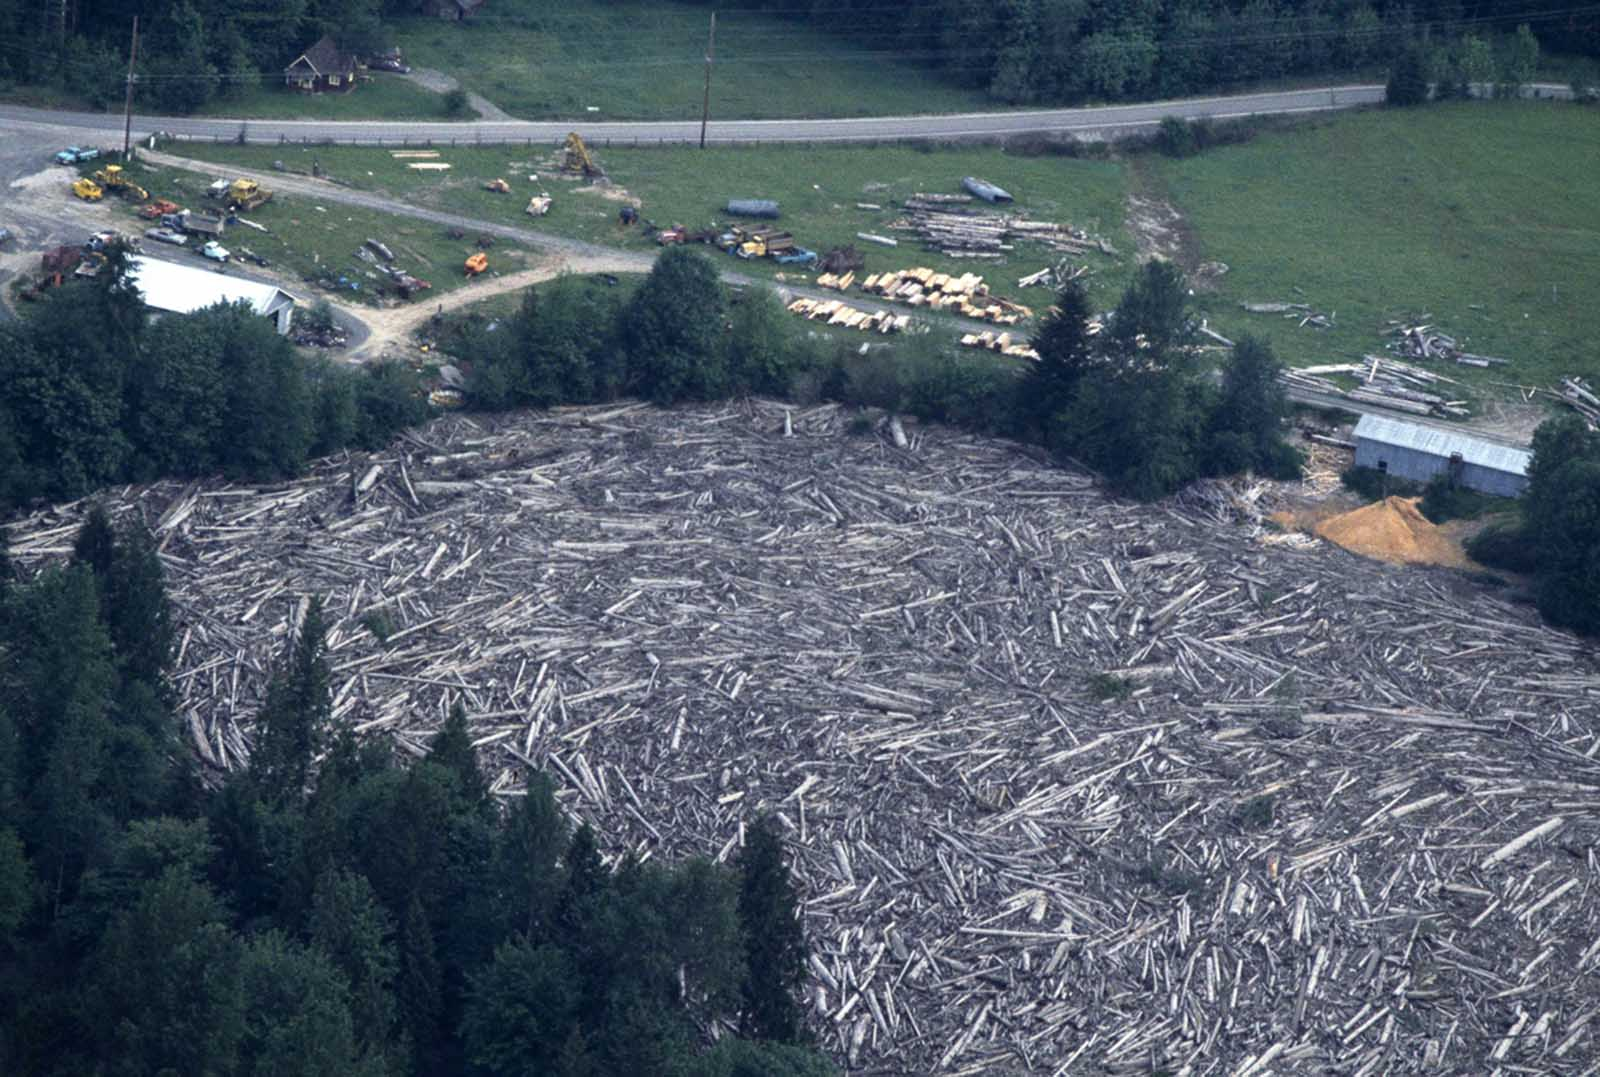 An aerial view of destruction of logging operation after floods following Mount St. Helens' eruption, shown on May 20, 1980.